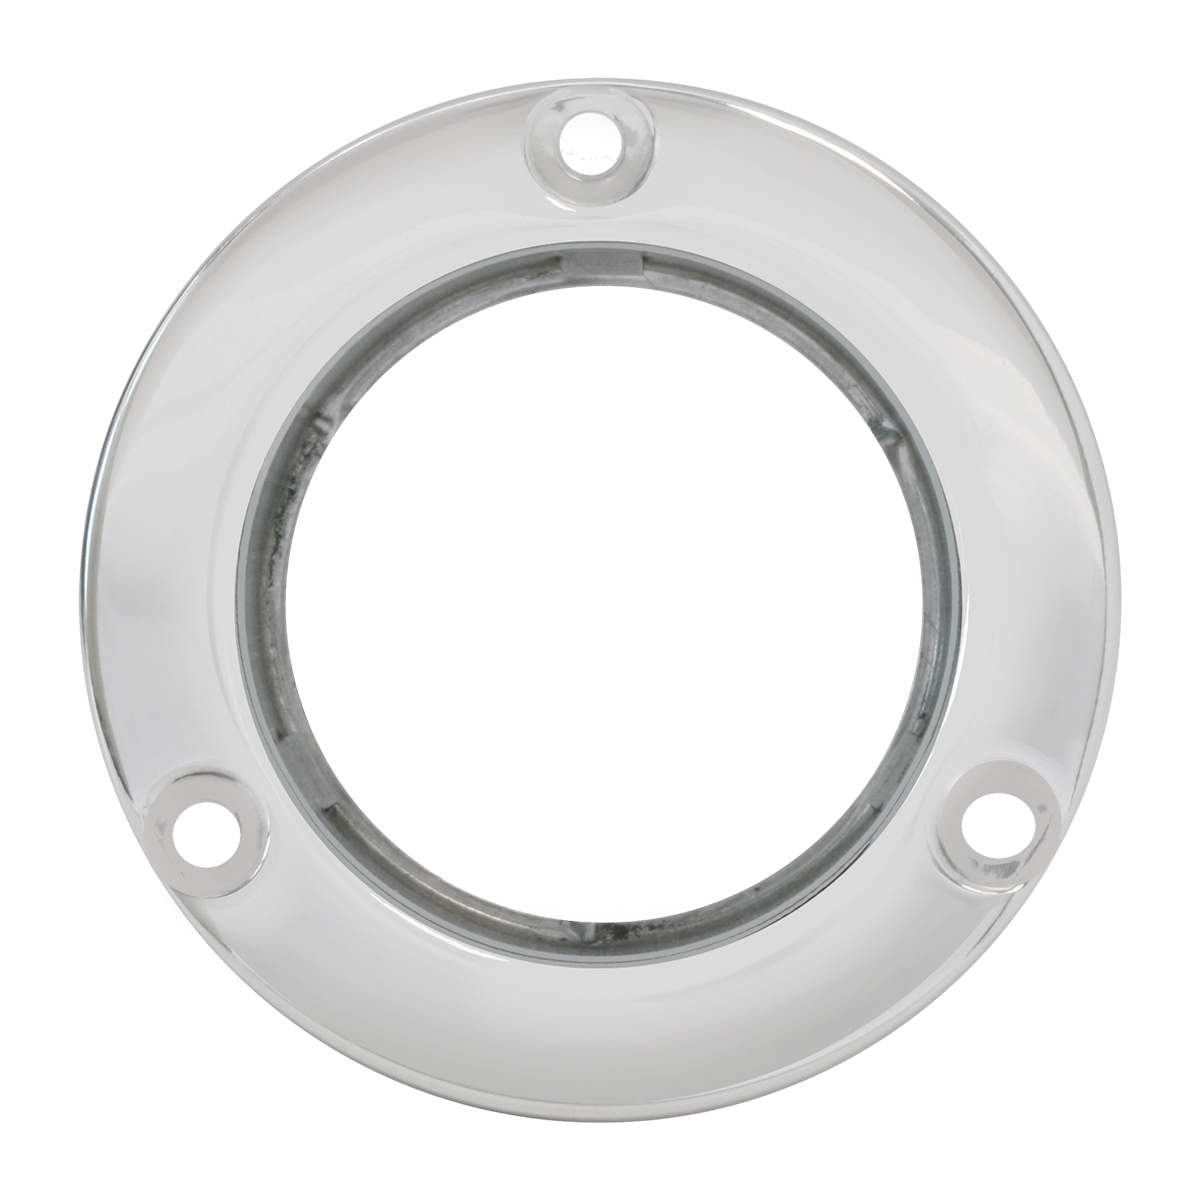 "87149 Stainless Steel Flange Mount Bezel for 2"" Round Light"